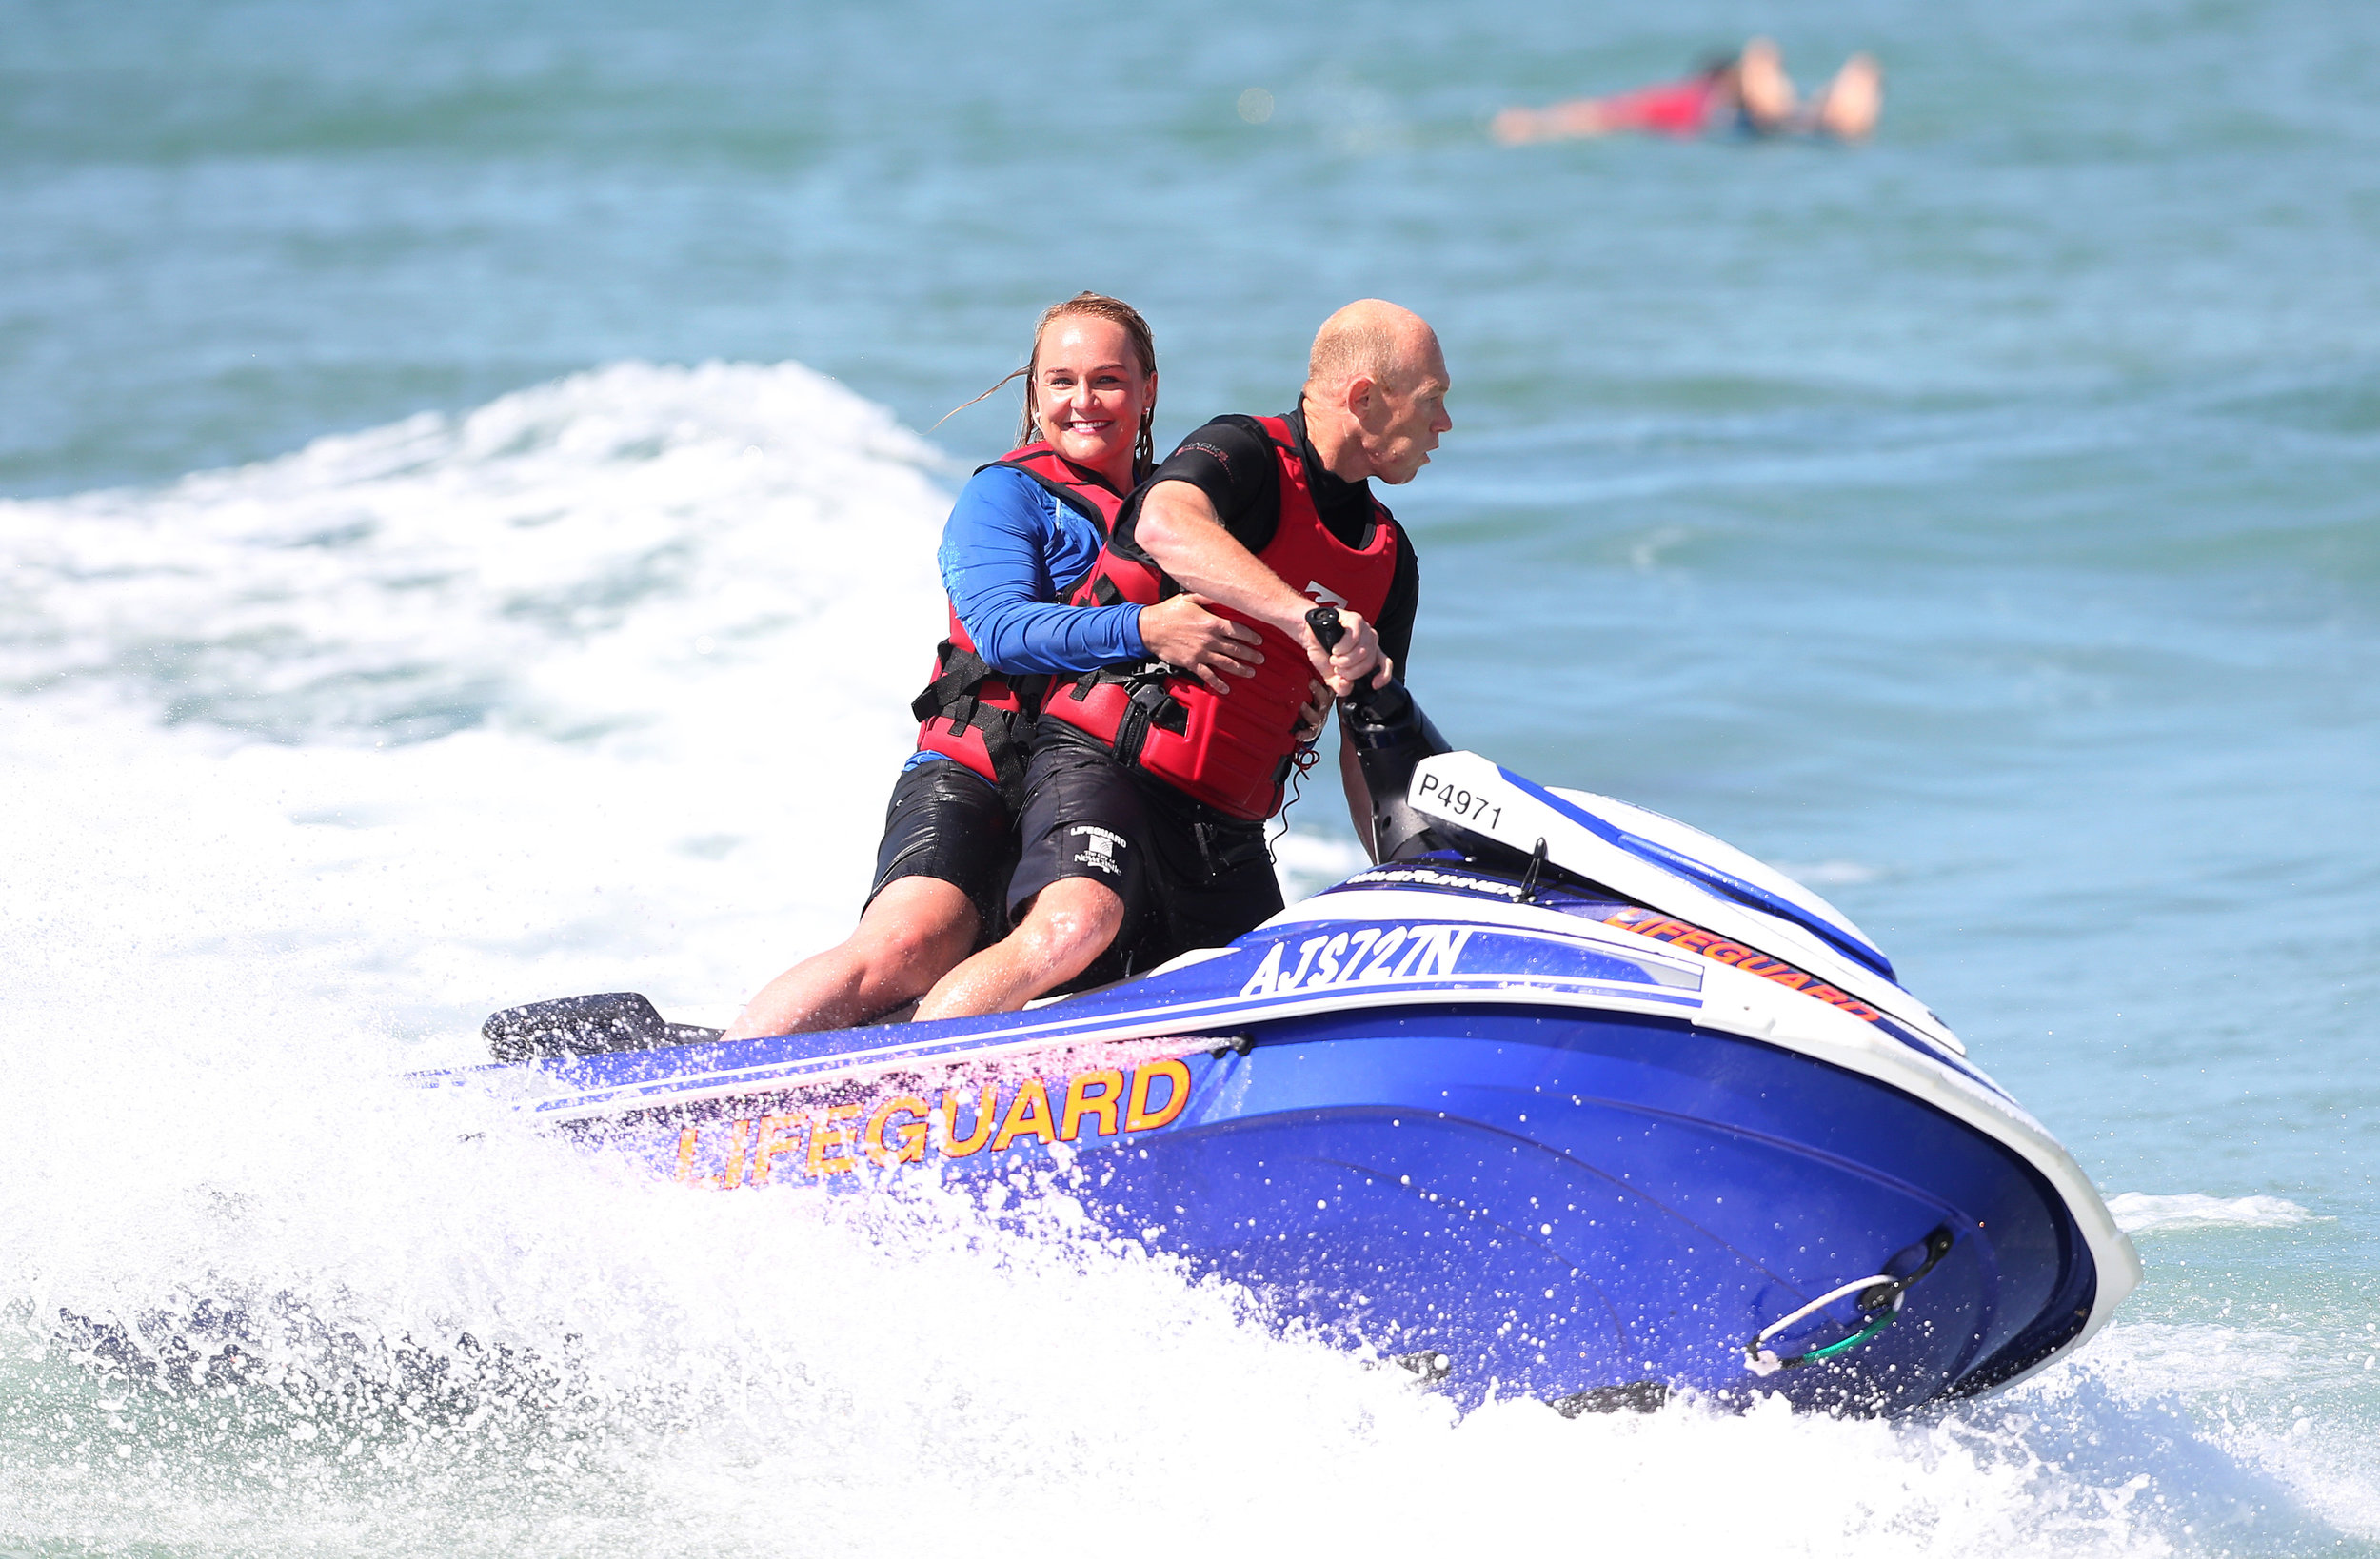 Catching a wave on City of Newcastle's new high-powered, light-weight jet ski